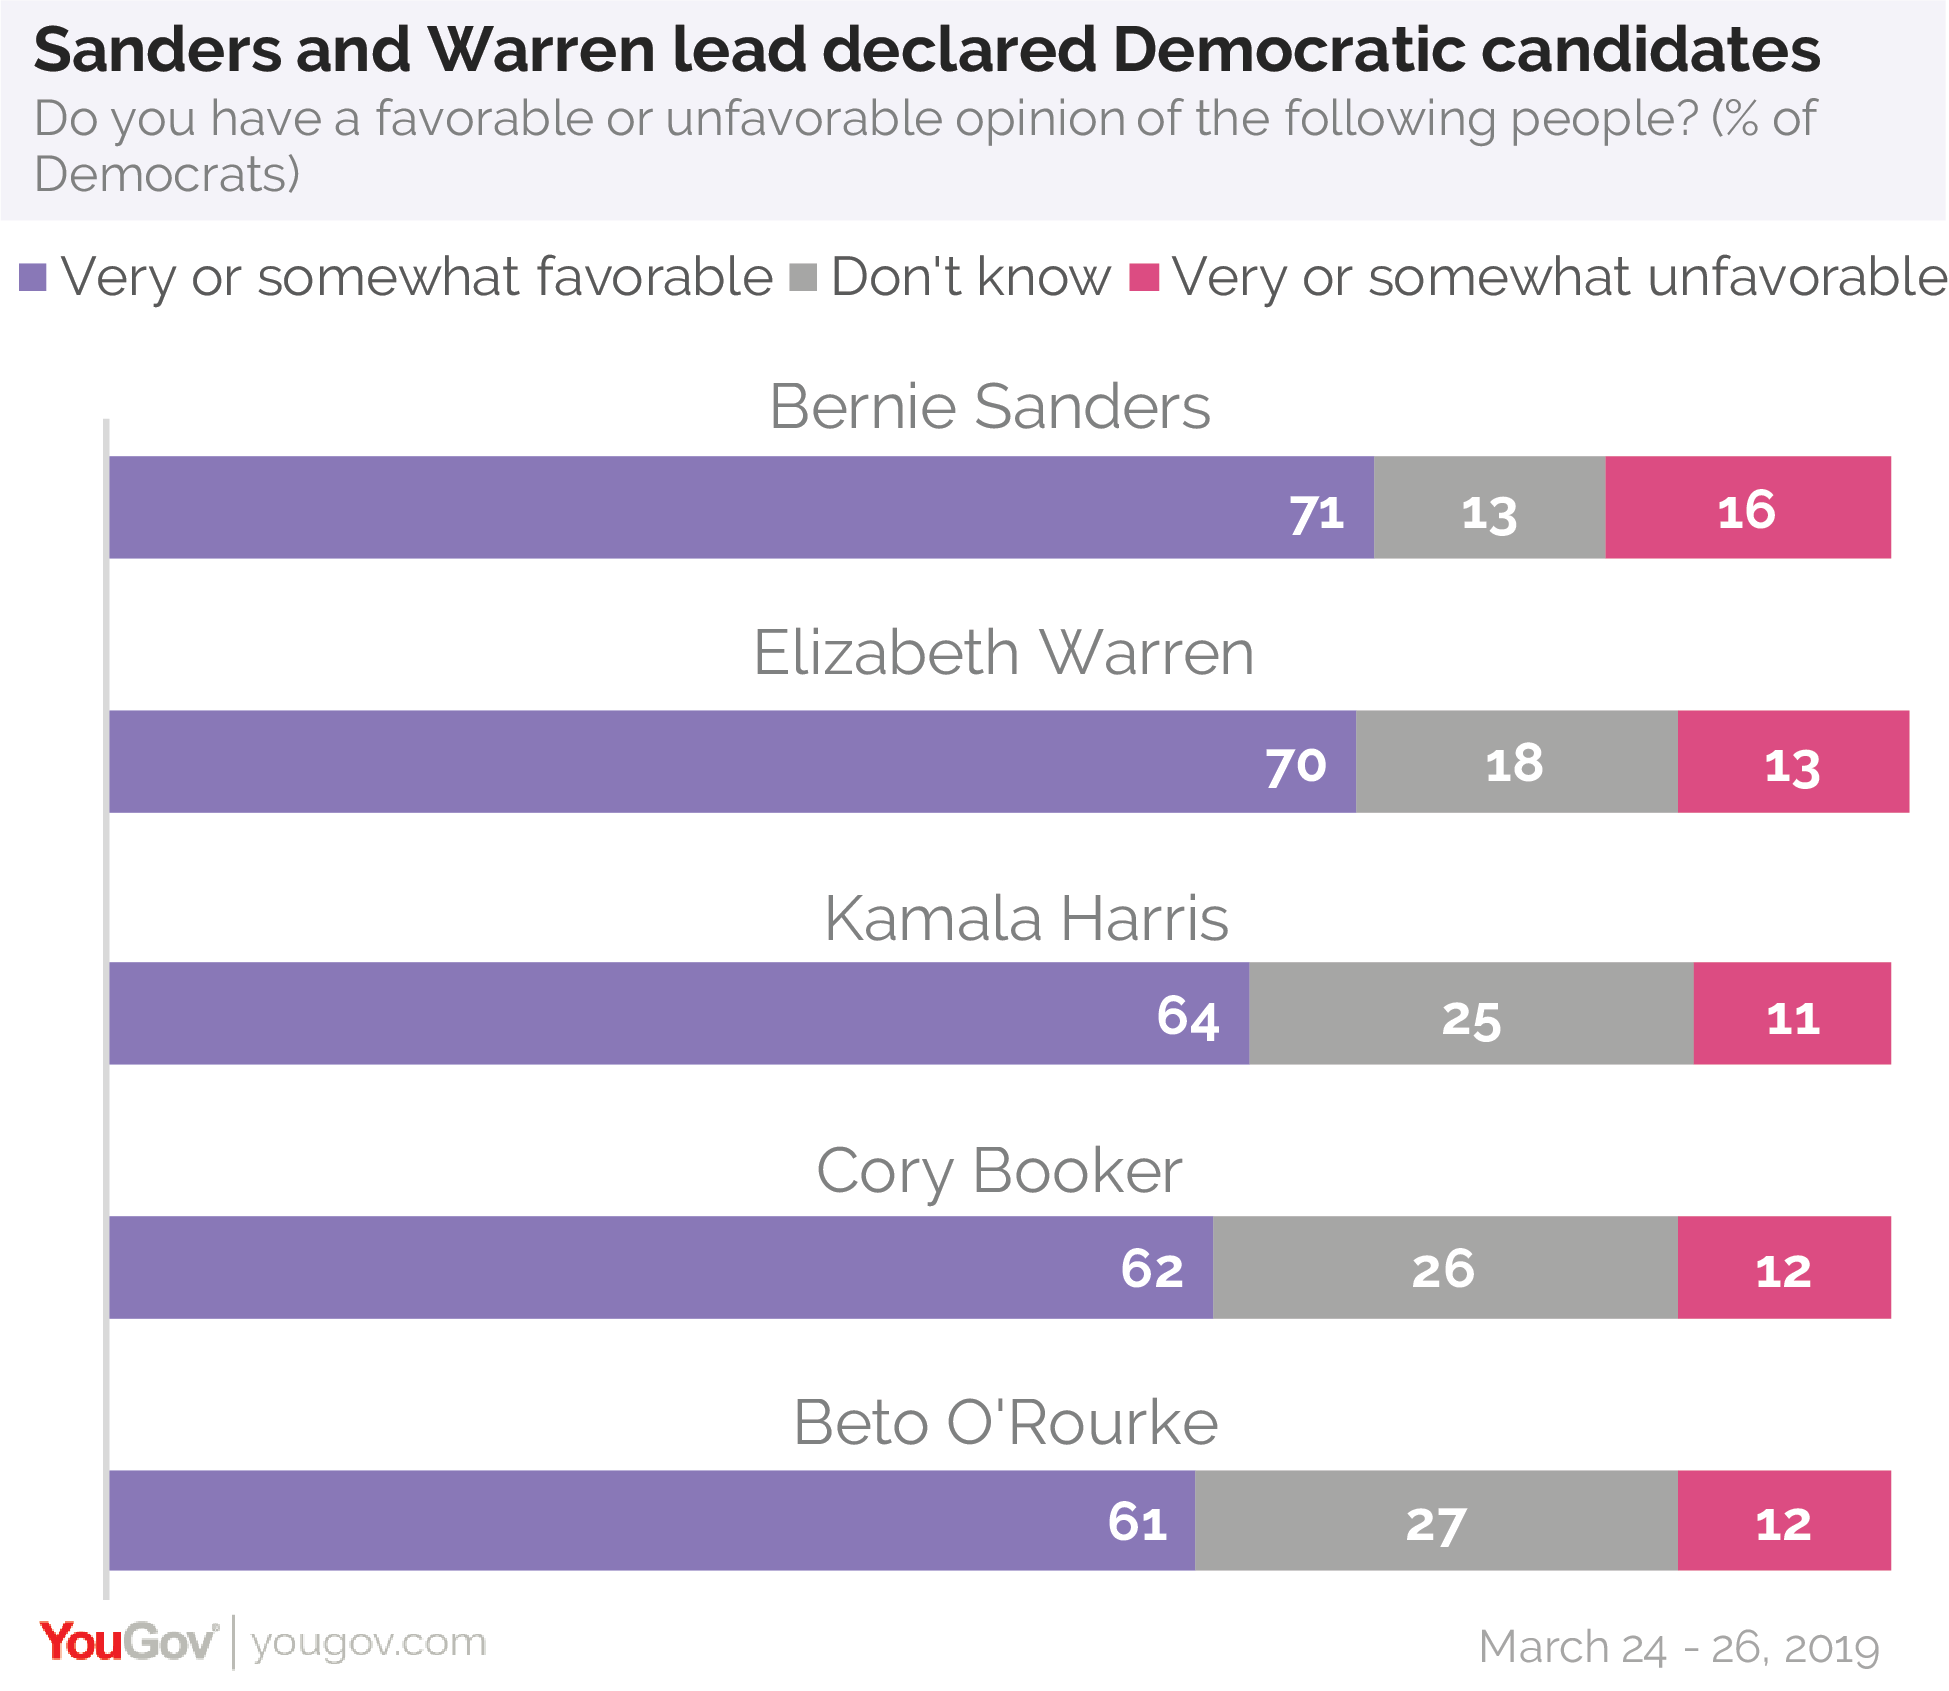 Sanders and Warren lead declared Democratic candidates